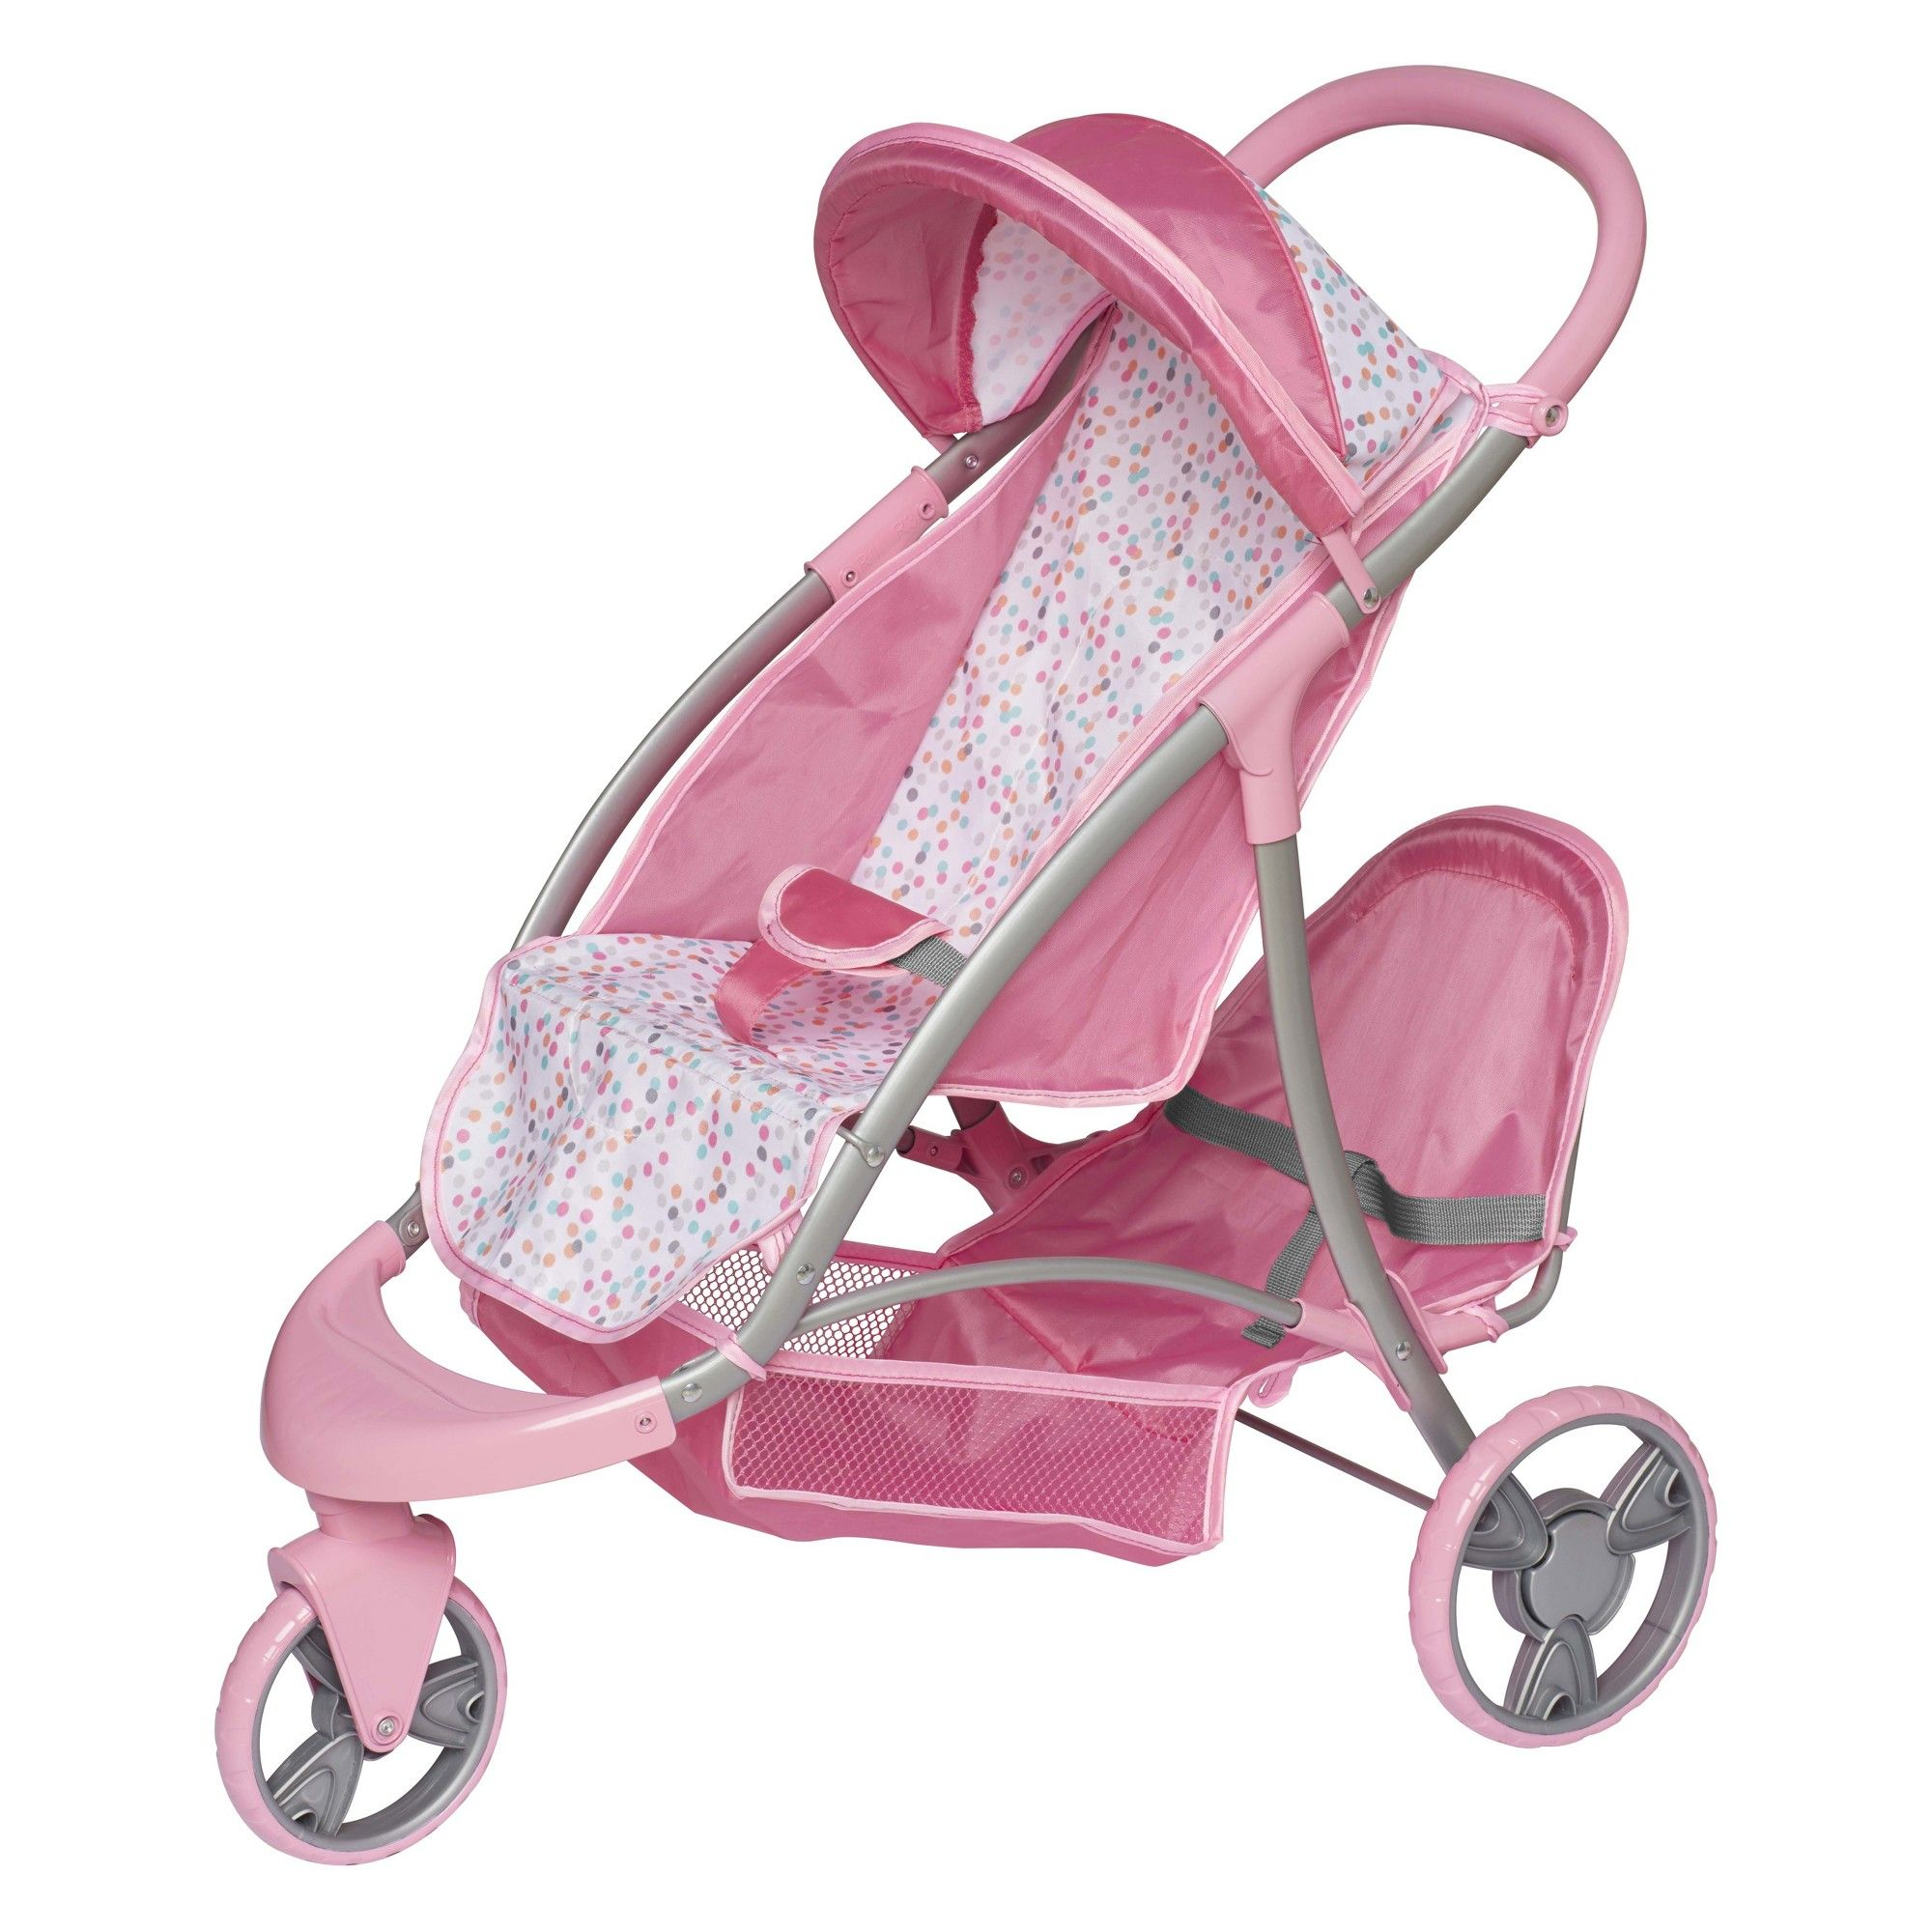 Perfectly Cute Baby Doll Double Stroller Duo Jogger